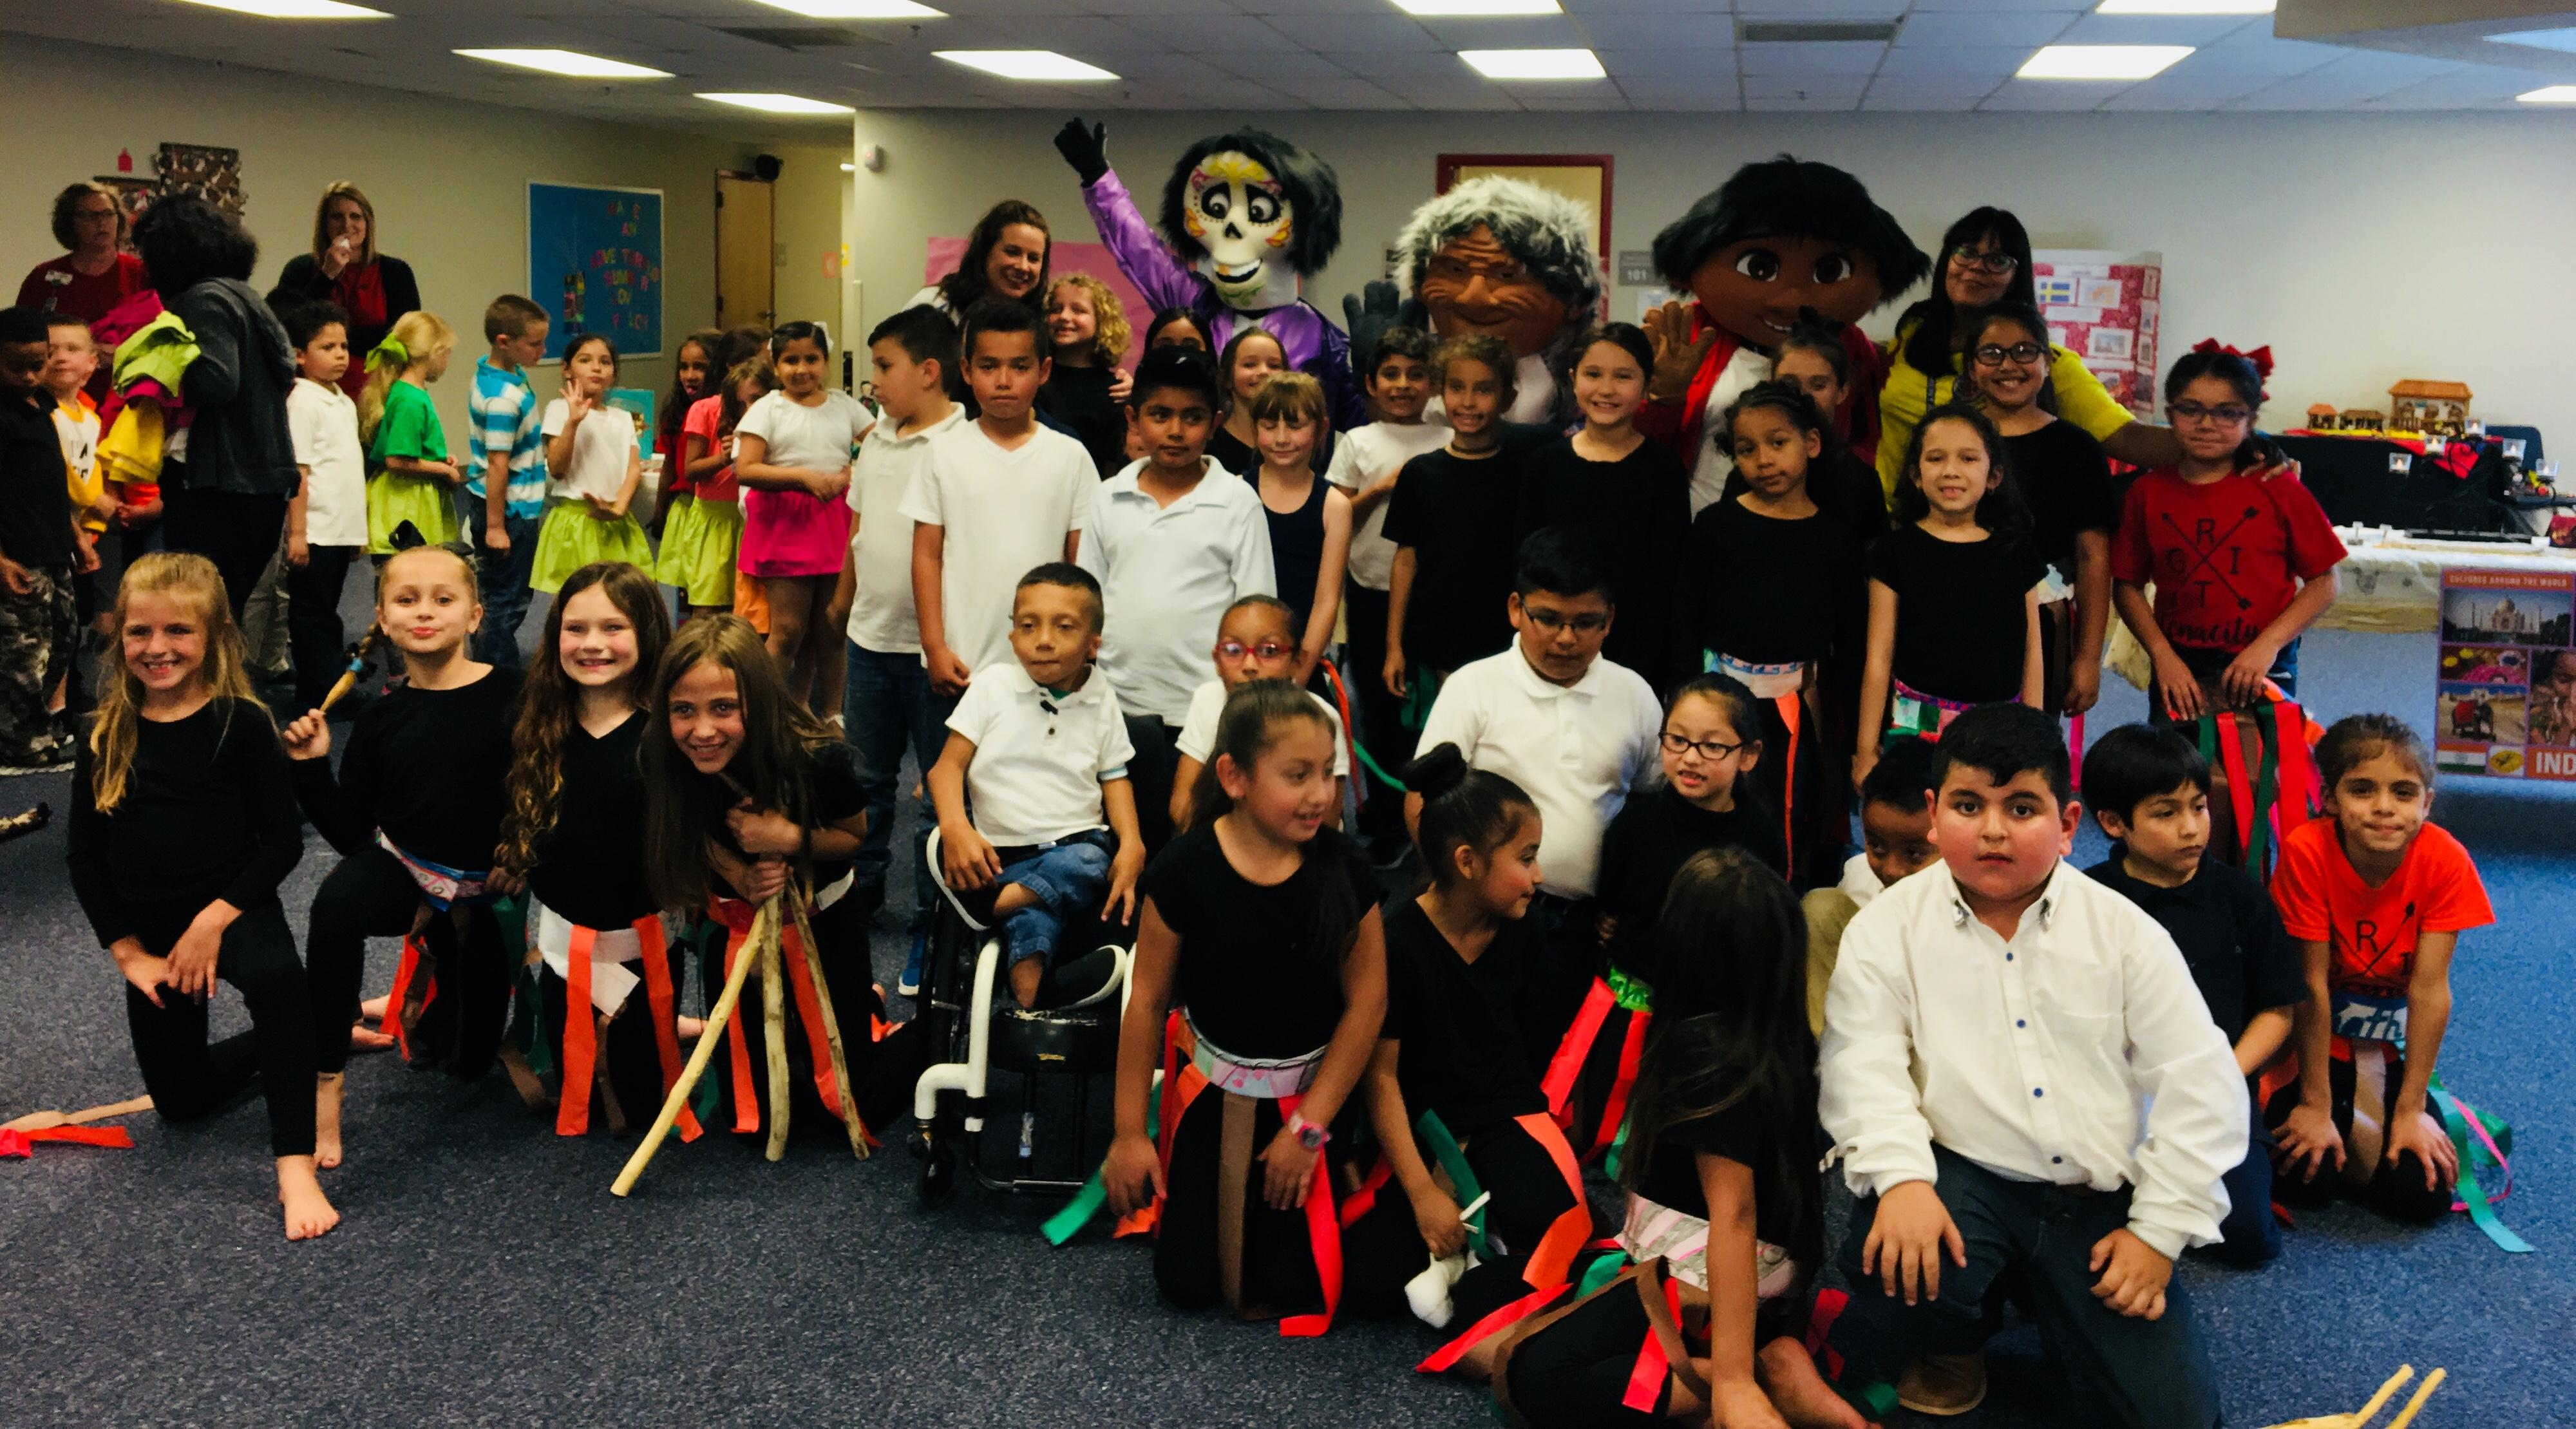 Liberty Elementary students and families recently participated in a two-day cultural event that included performances by students in the school's dual language classes